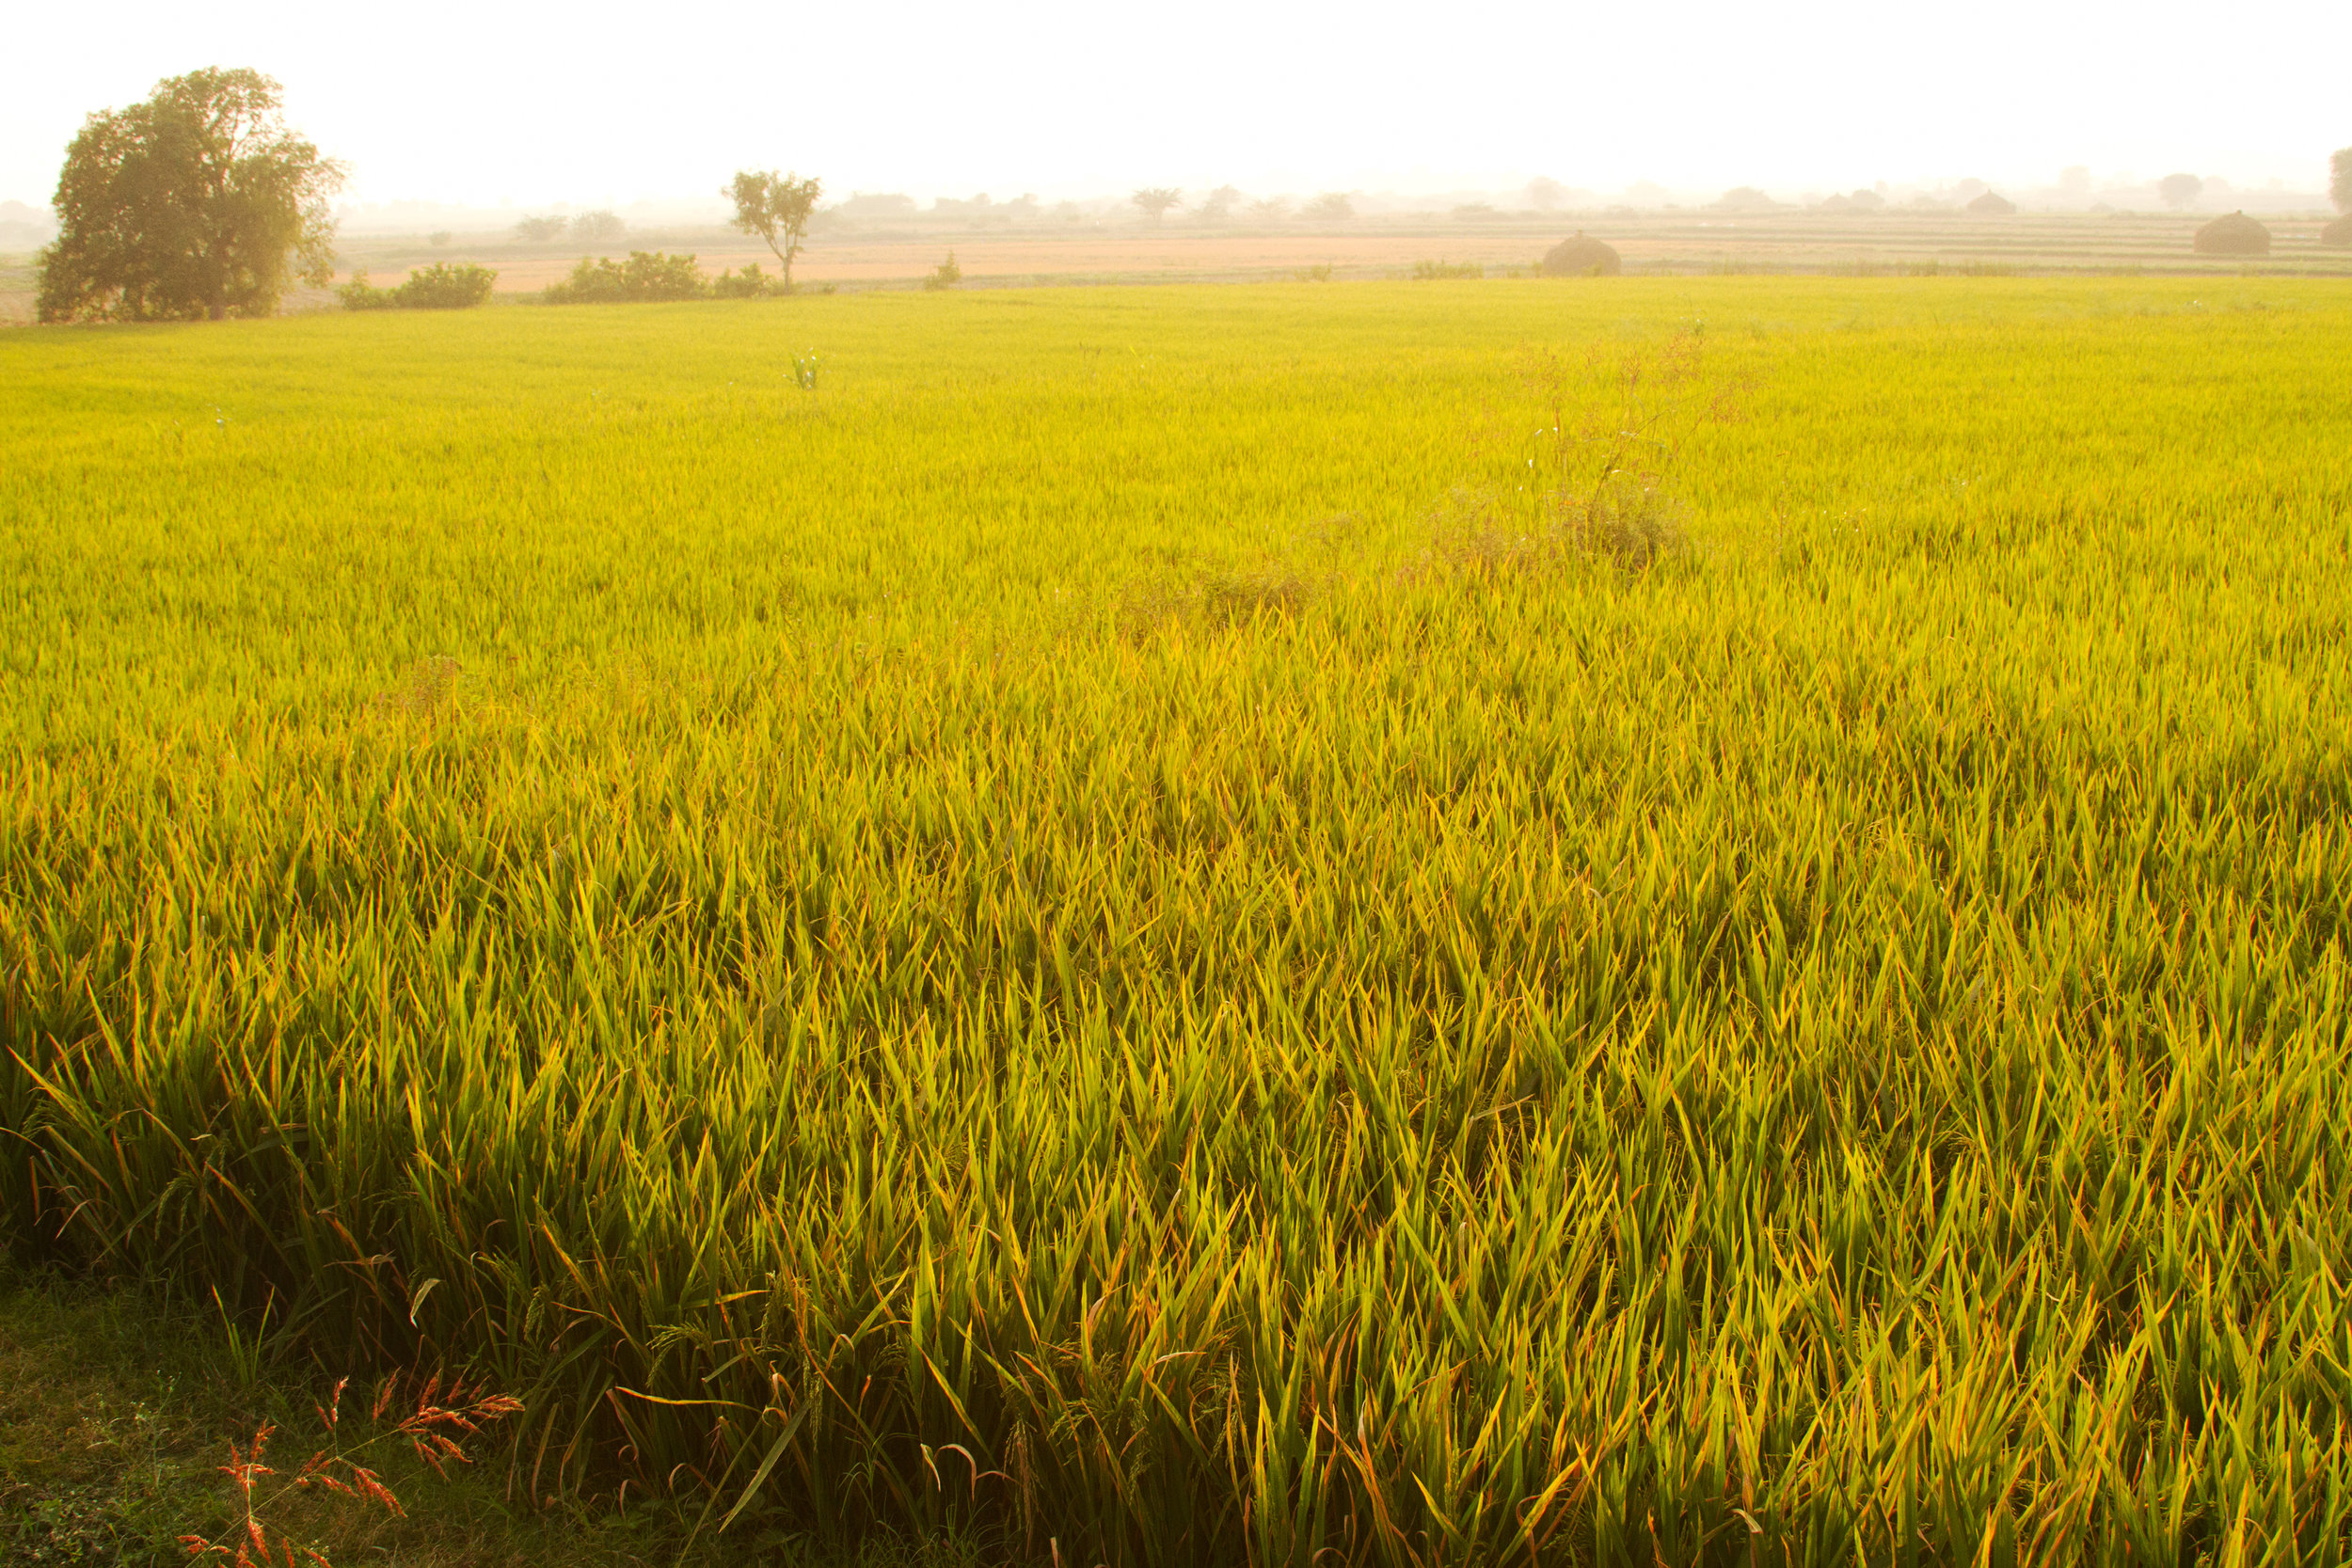 Rice fields are everywhere in southern India.